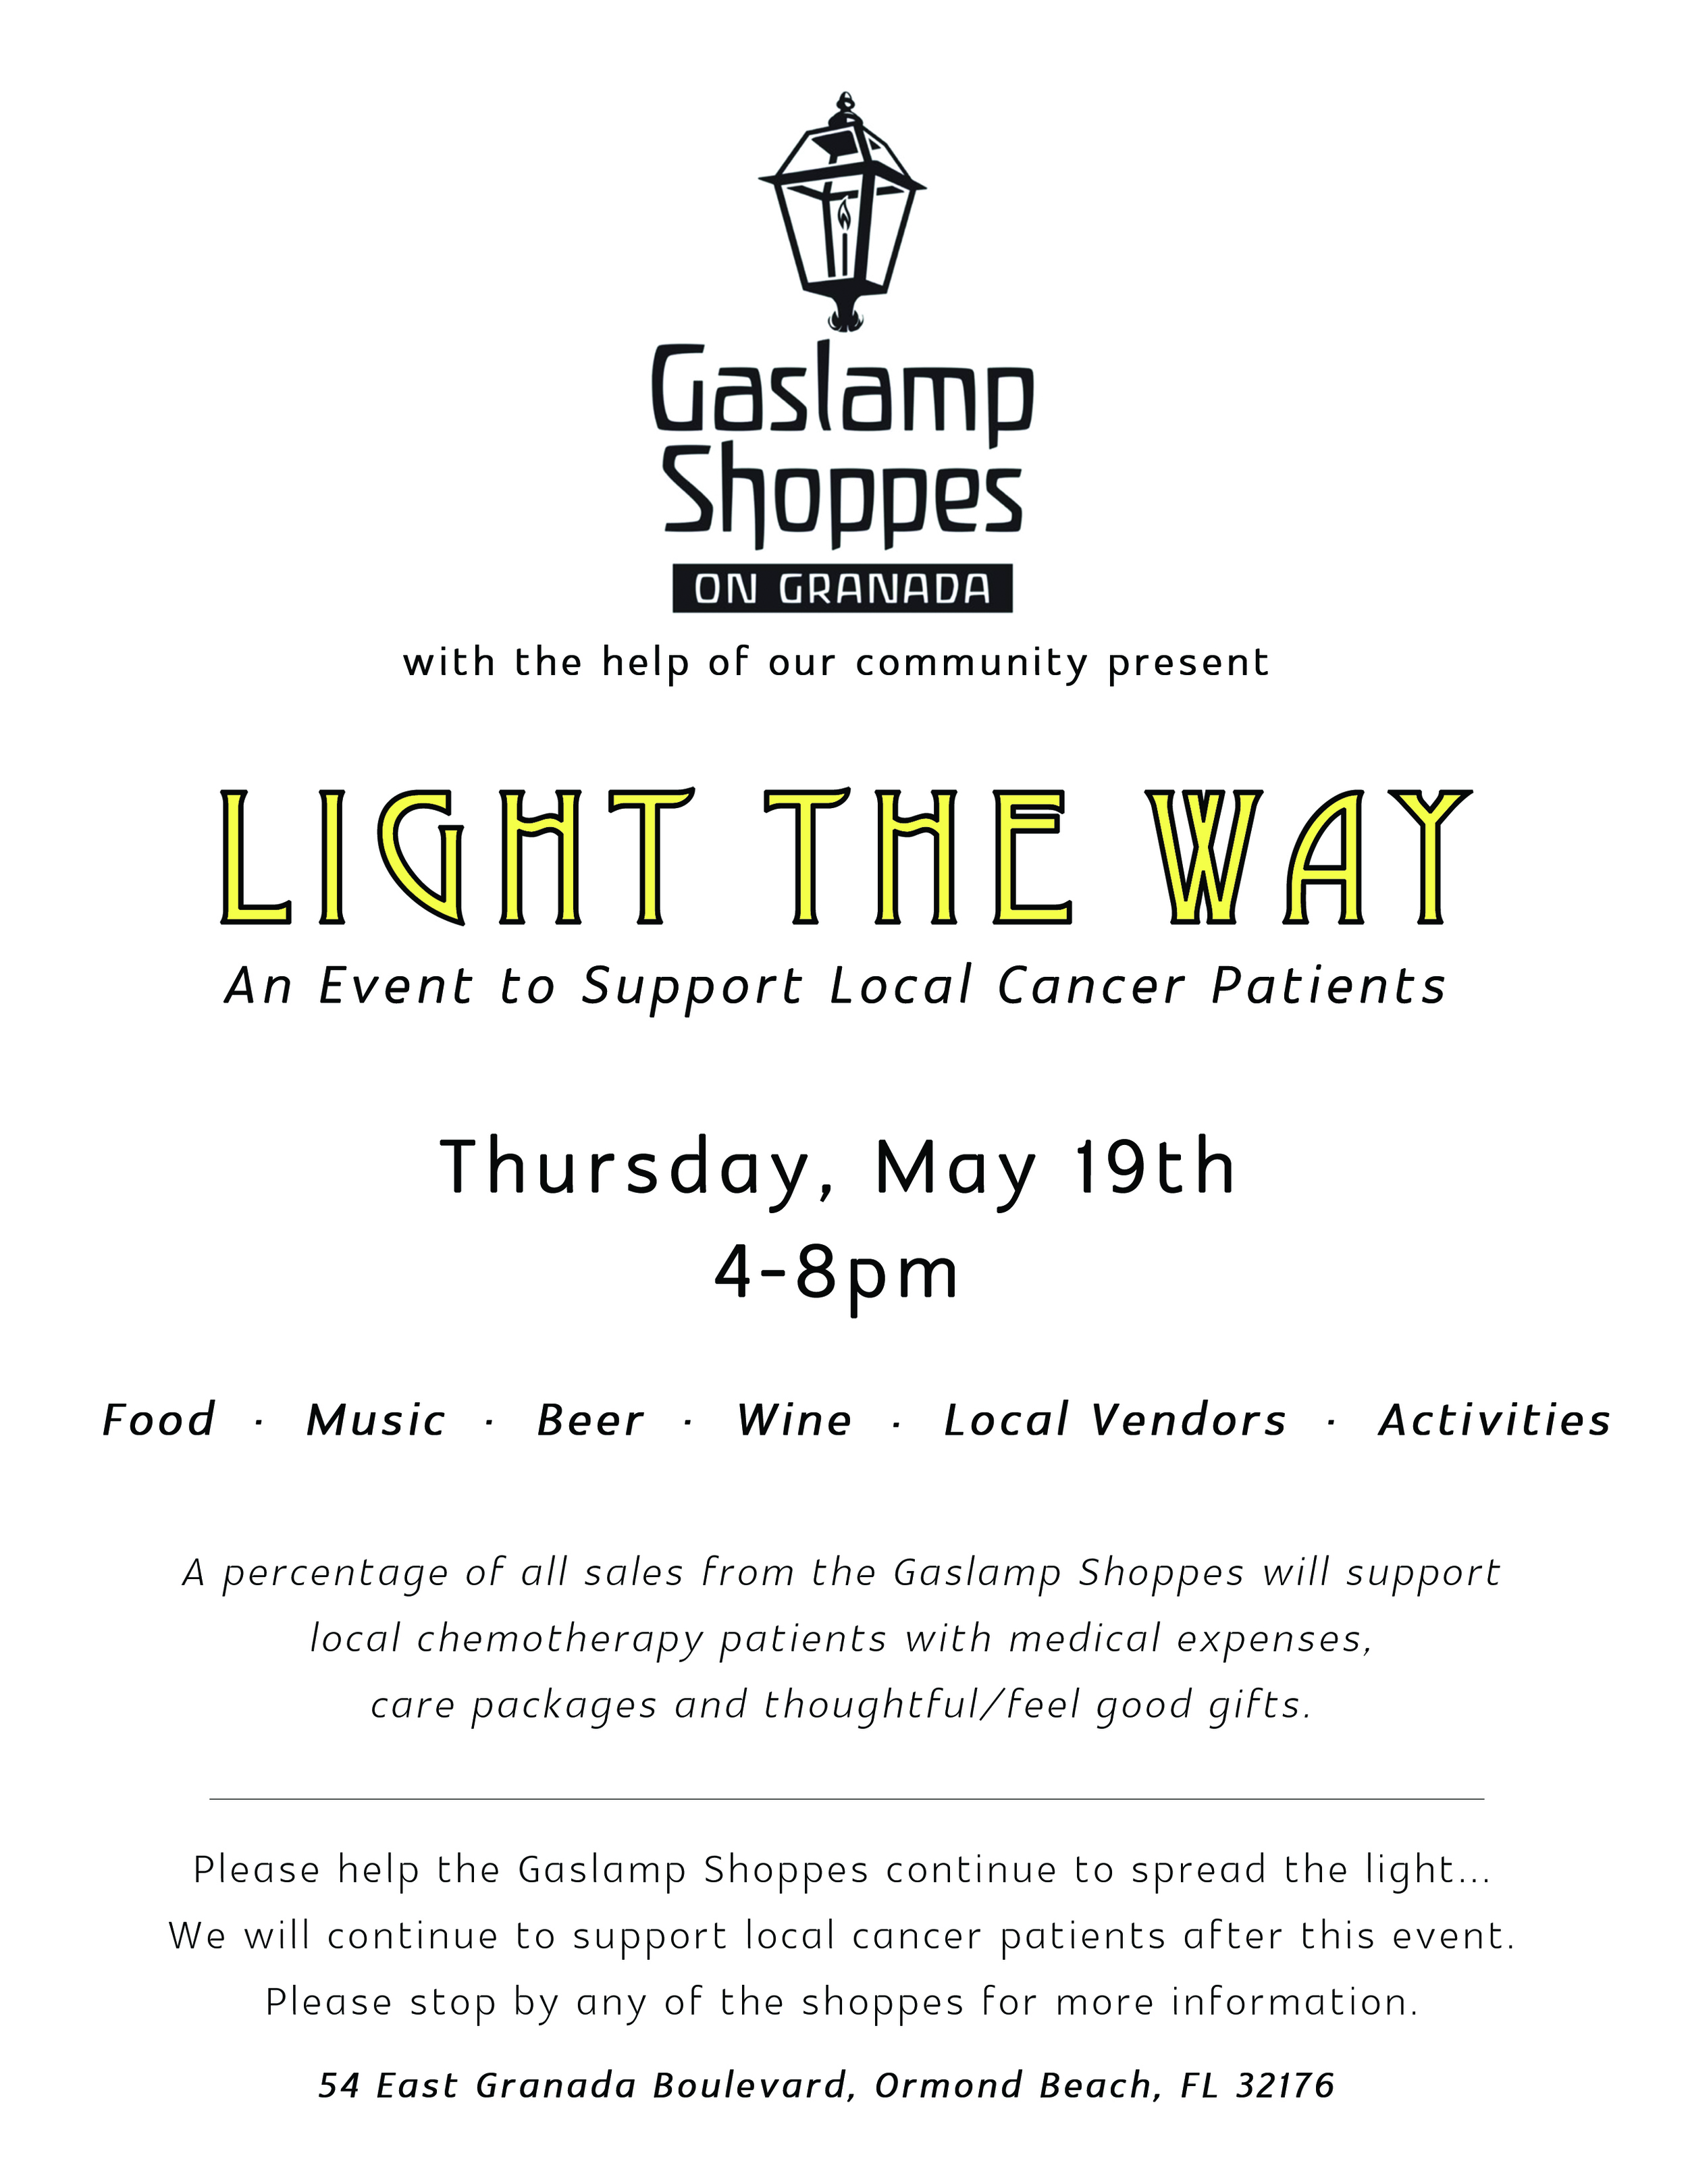 Gaslamp Light the Way Flyer-2.jpg